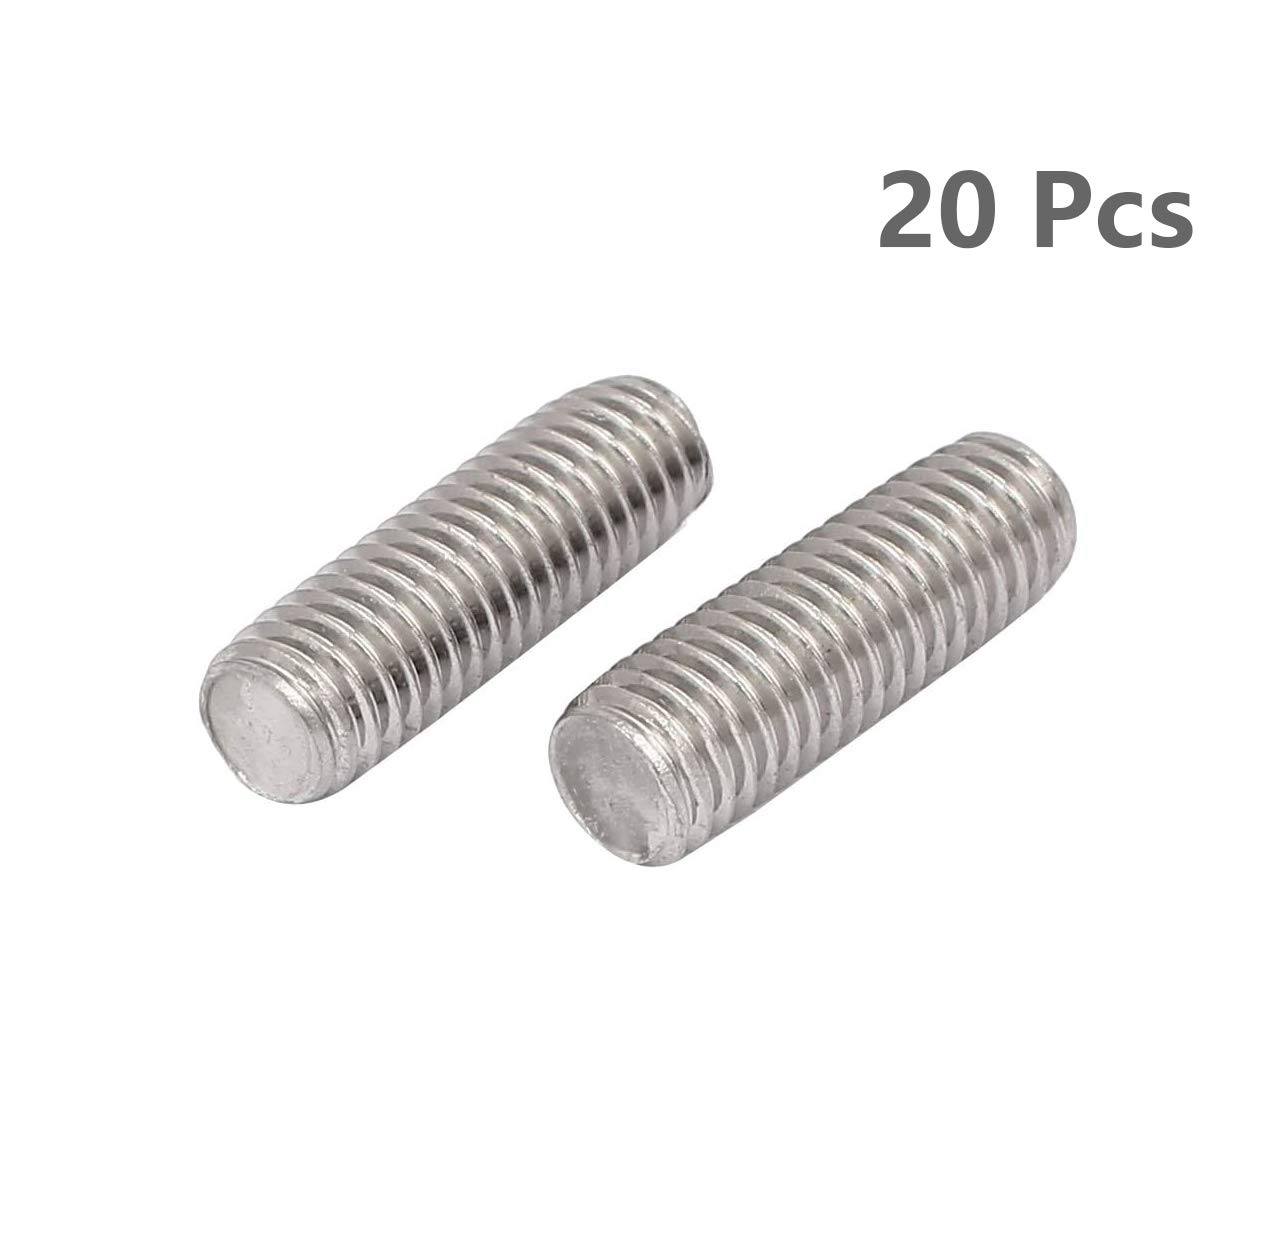 Right Hand Threads,Bar Studs Silver Tone 20 Pcs WEIJ M6 x 25mm 1mm Pitch Fully Threaded Rod 304 Stainless Steel